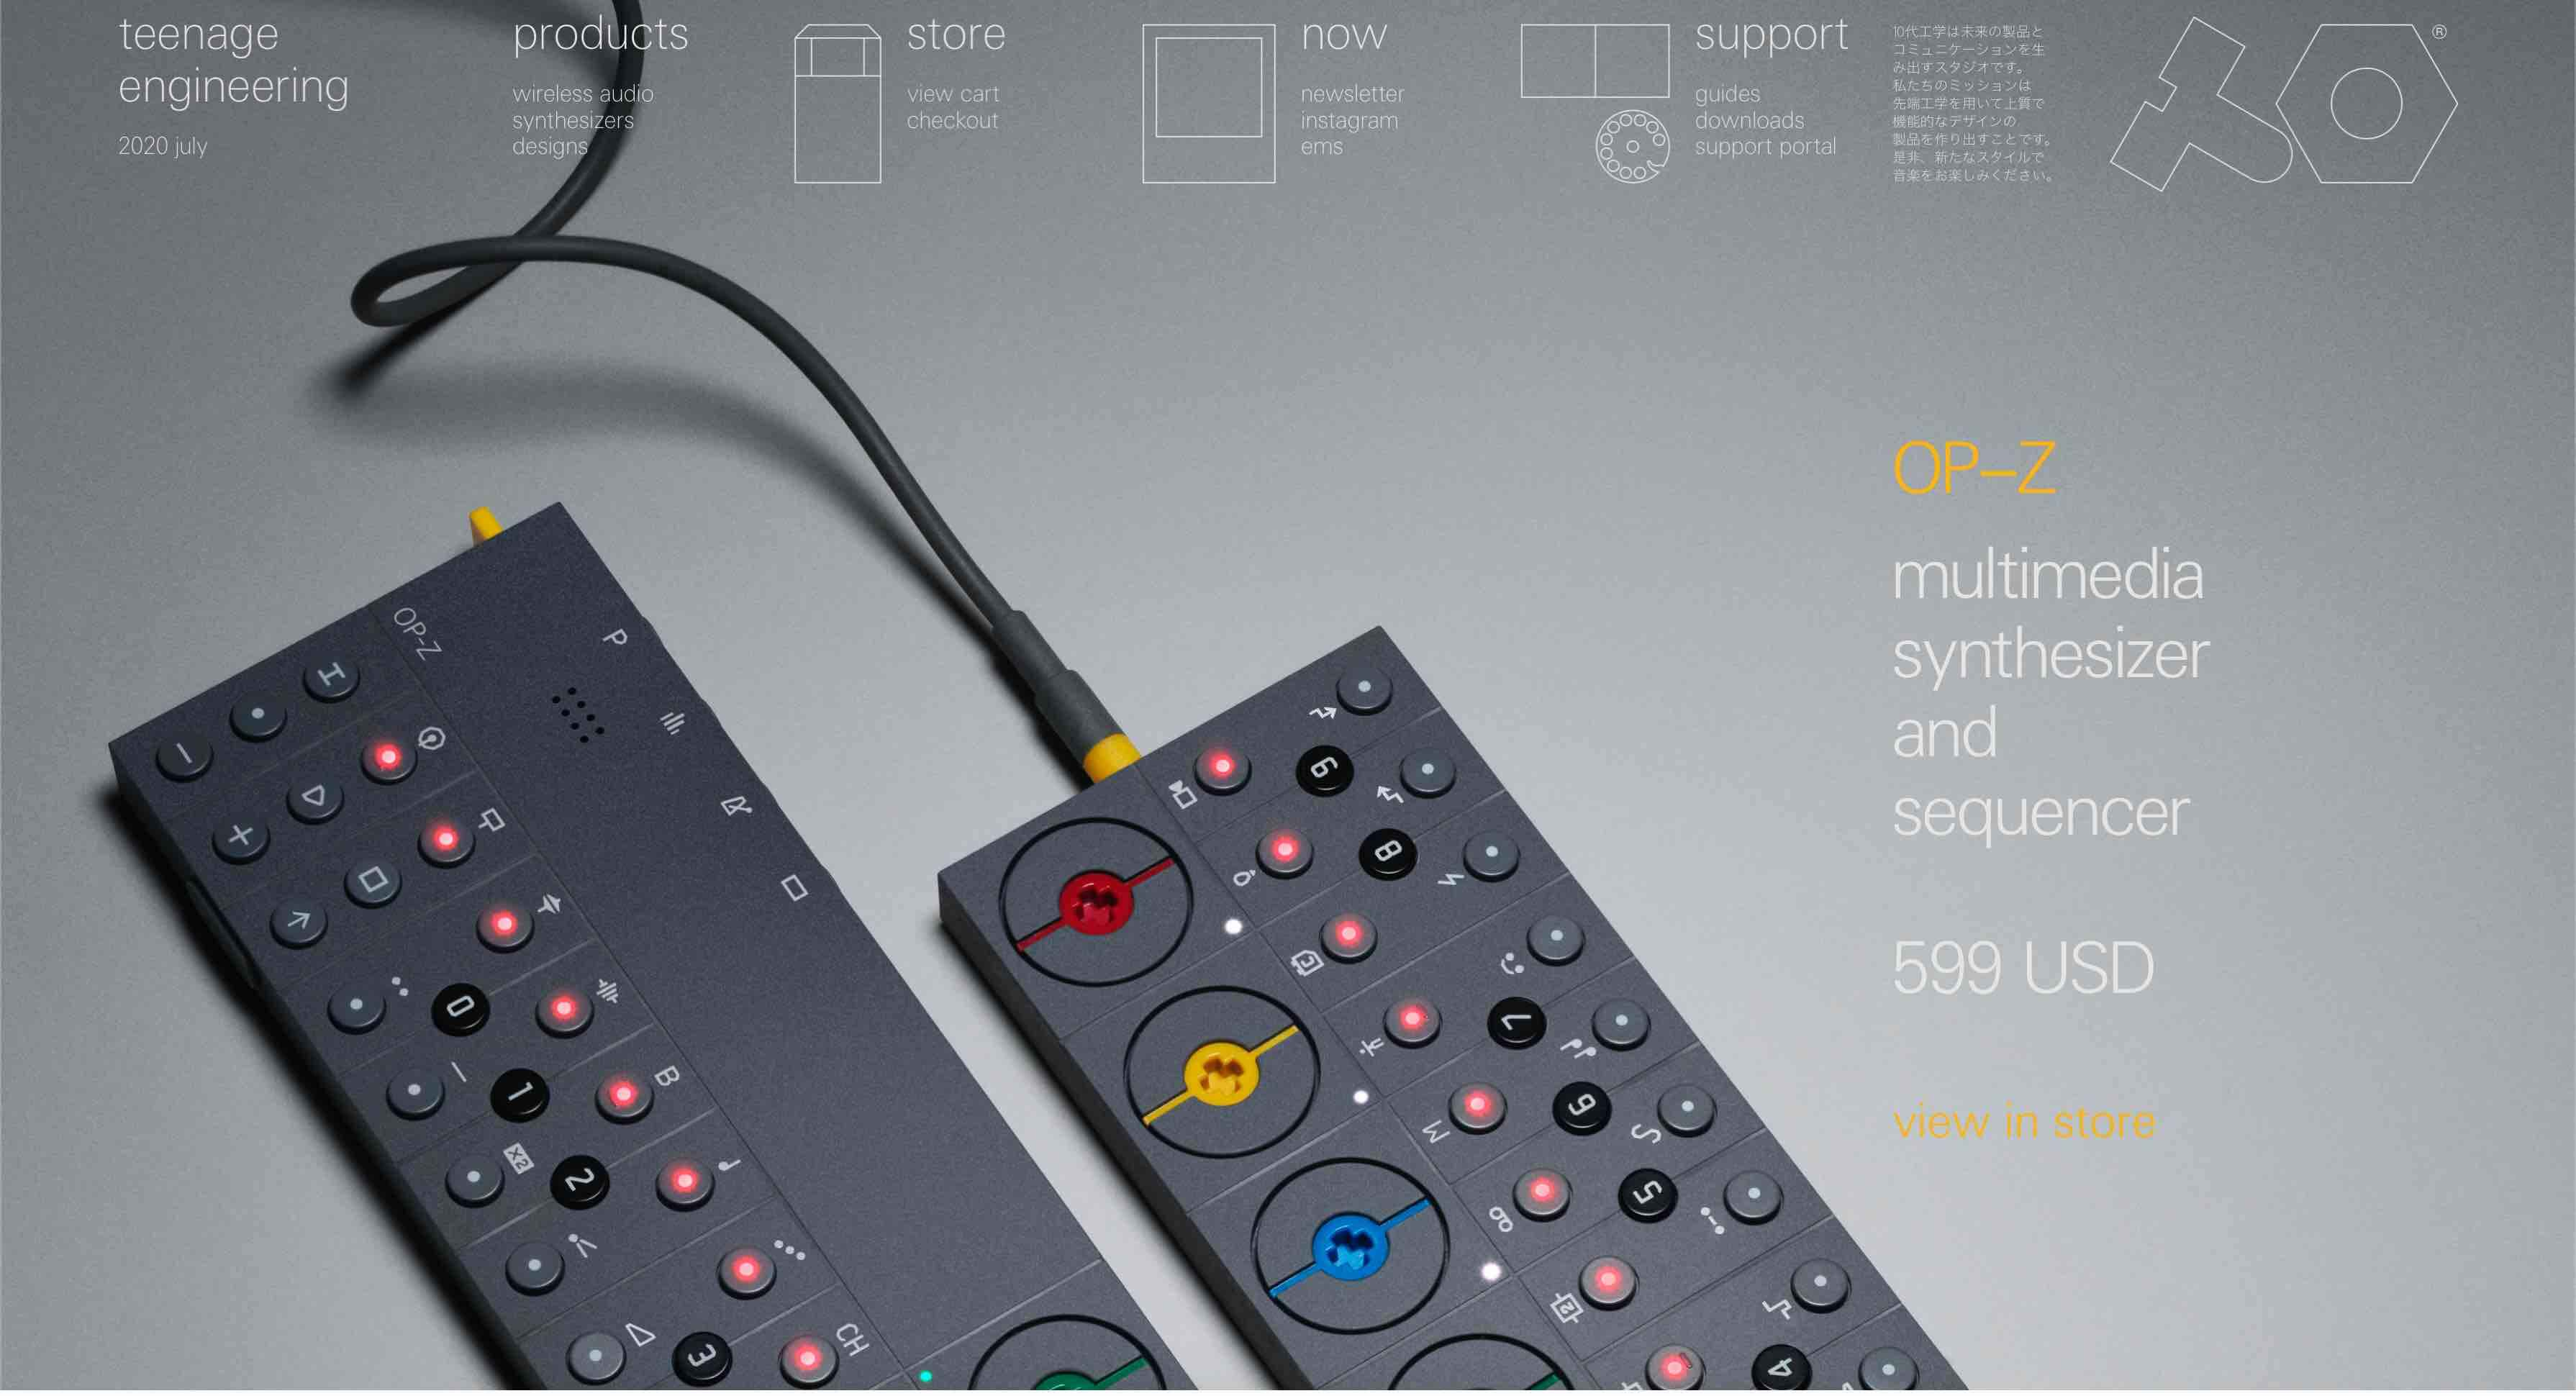 Screenshot of Teenage Engineering webpage (a Swedish consumer electronics company and manufacturer) with multimedia synthesizers